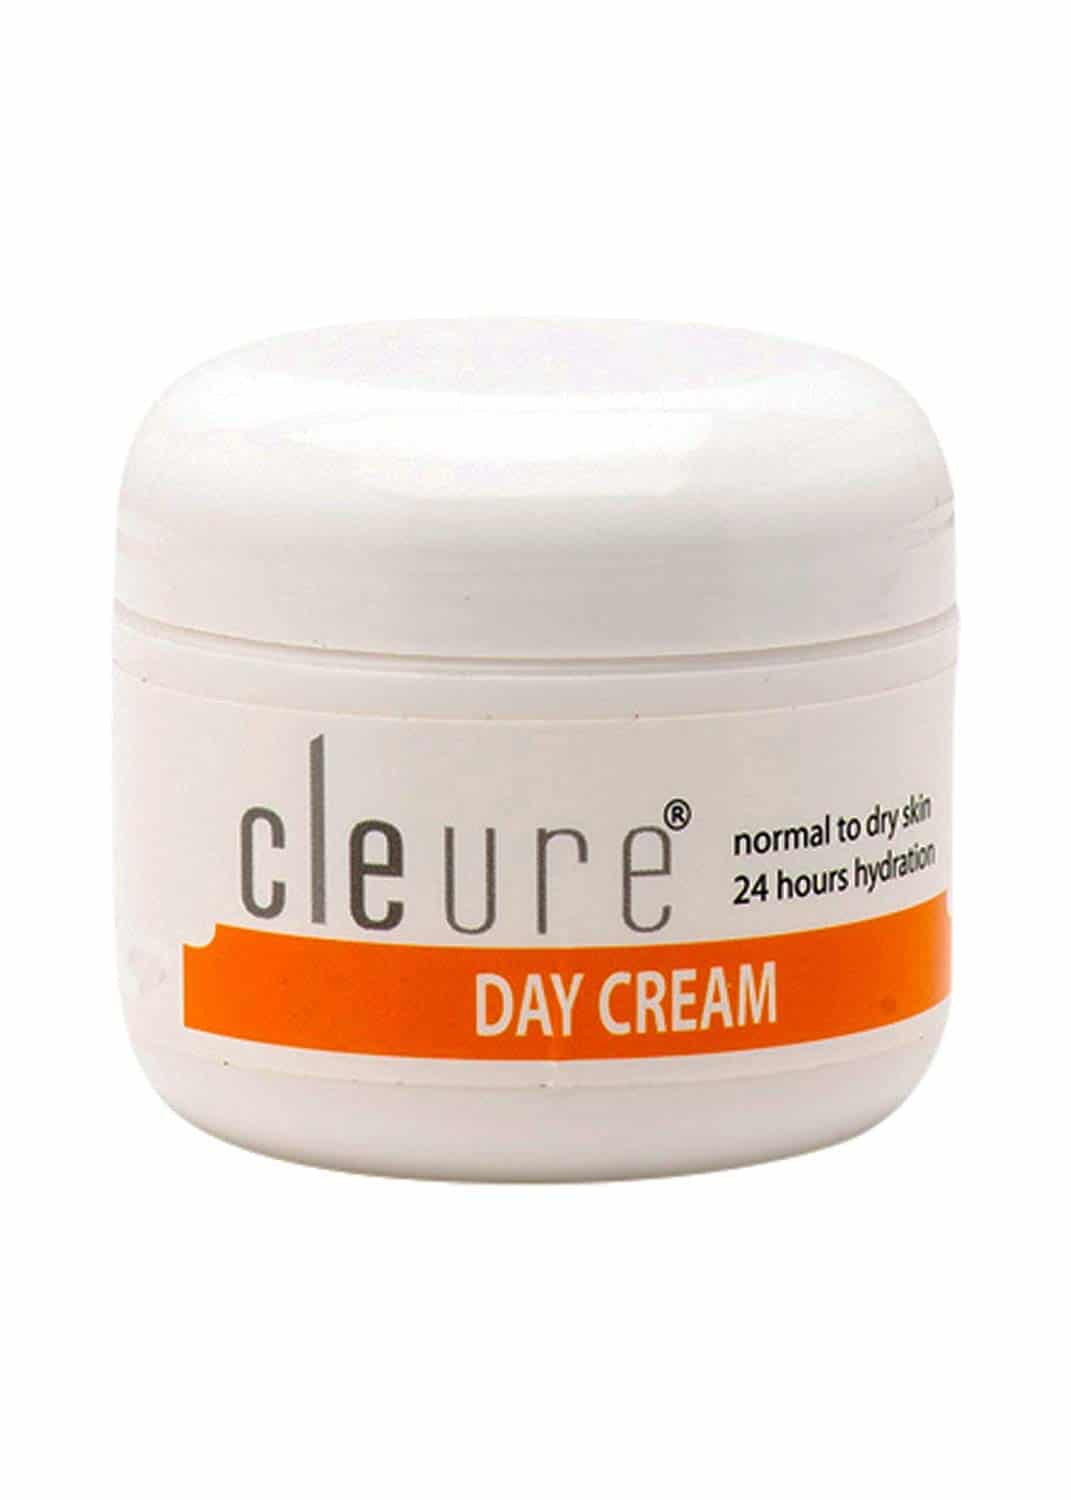 Cleure Day Cream for Sensitive Skin. Cleure Hypoallergenic Day Cream for Sensitive Skin is Paraben Free, Salicylate Free, Fragrance-Free and Gluten-Free and only has gentle ingredients. It is enriched with Shea Butter to help protect, soothe and repair your skin to look younger and beautiful